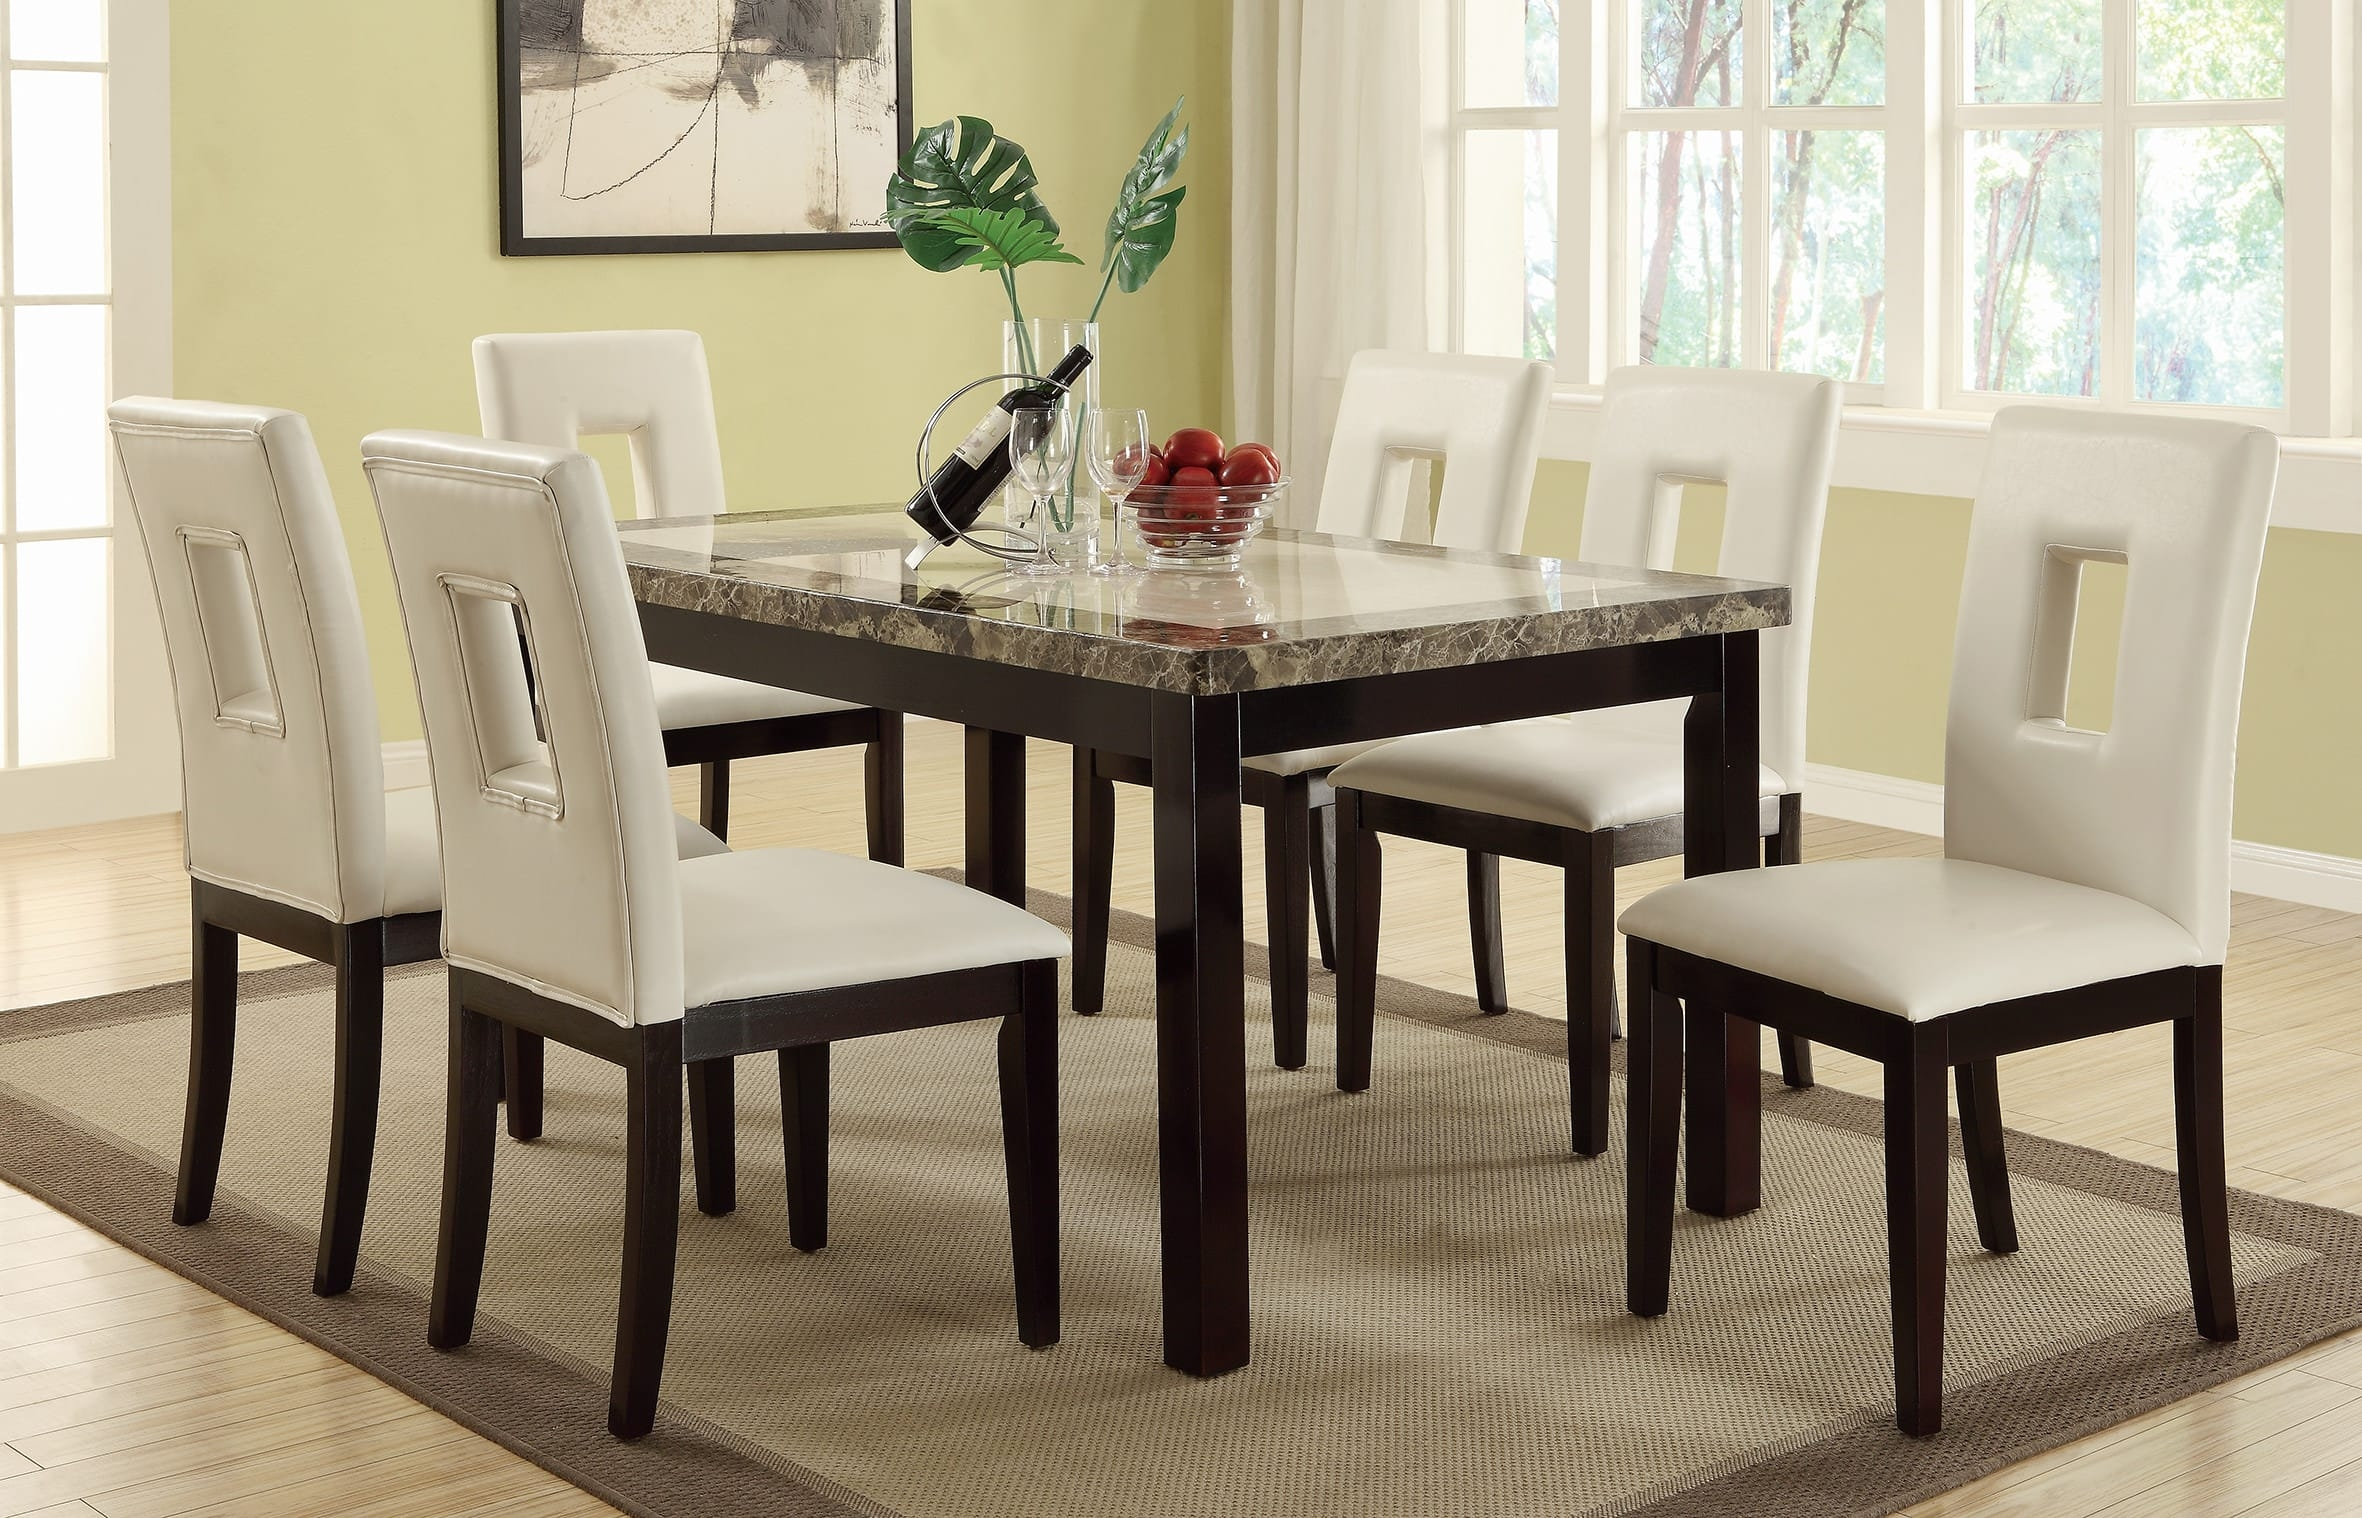 Marble top counter height dining table set  sc 1 st  Foter & Faux Marble Dining Table Set - Foter